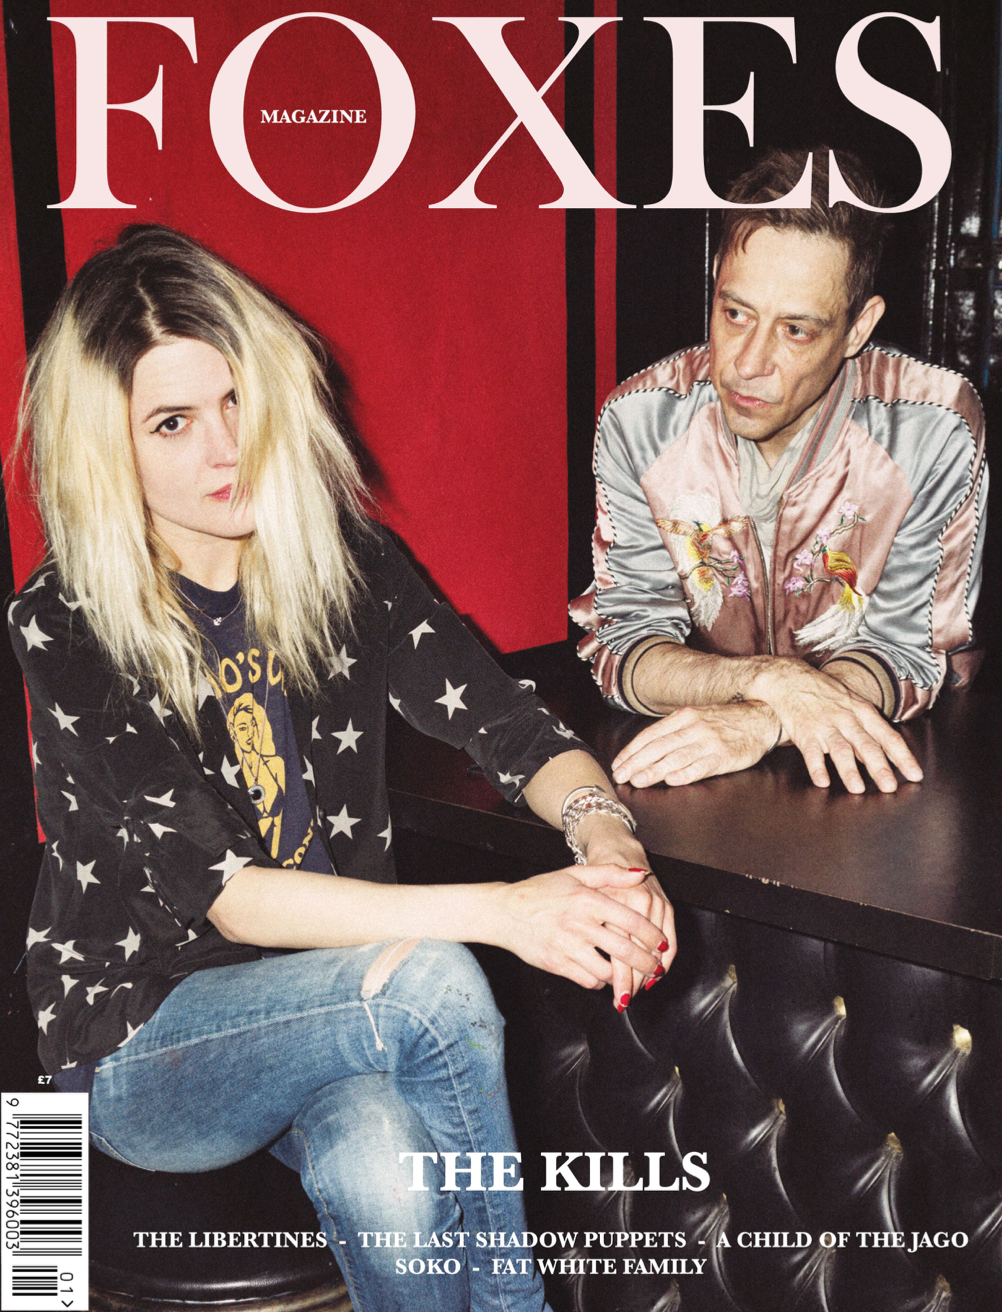 FOXES_103_THE_KILLS.png